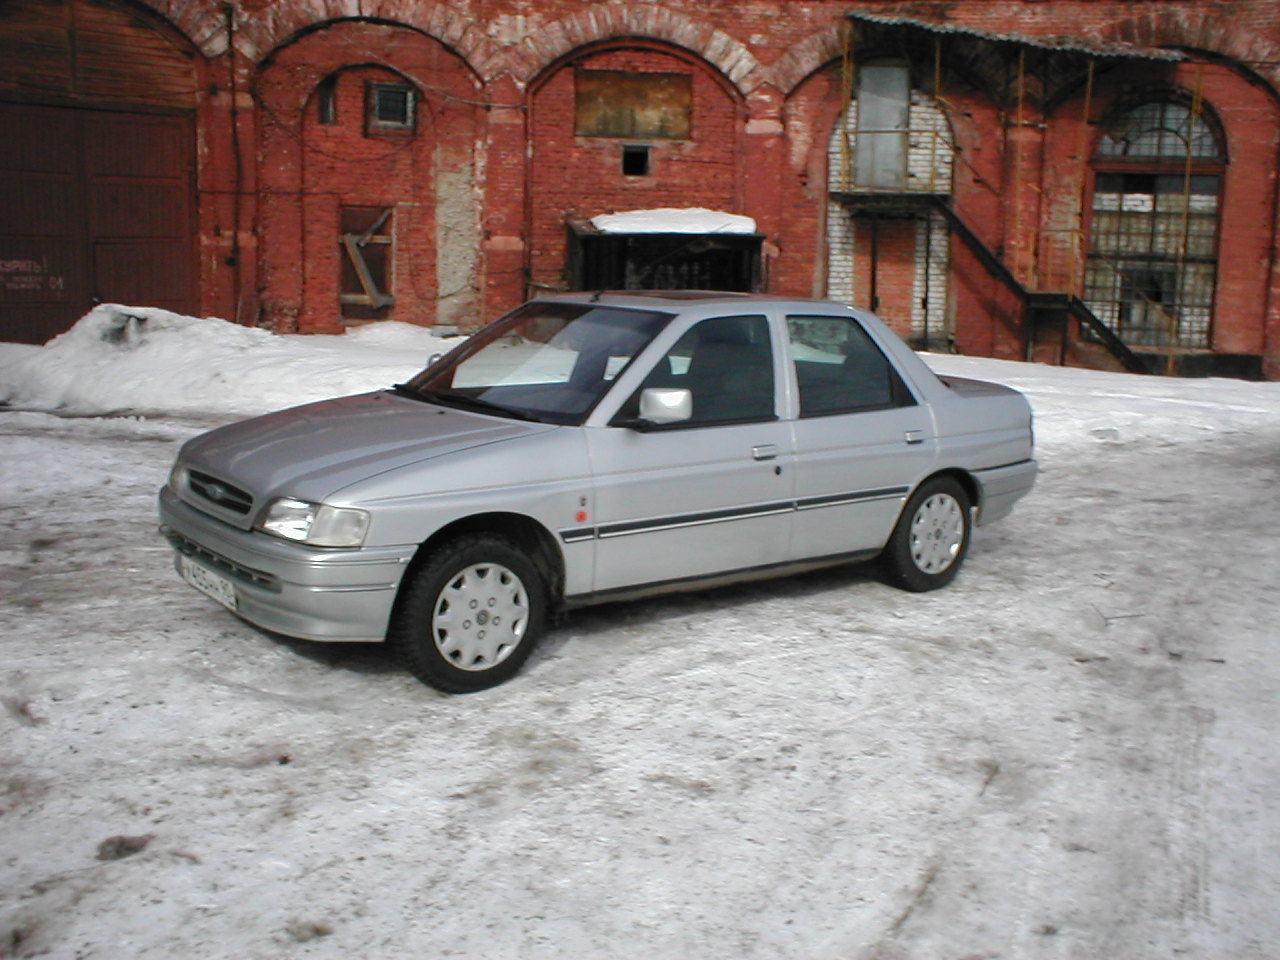 Ford Orion 1983 Photo - 1